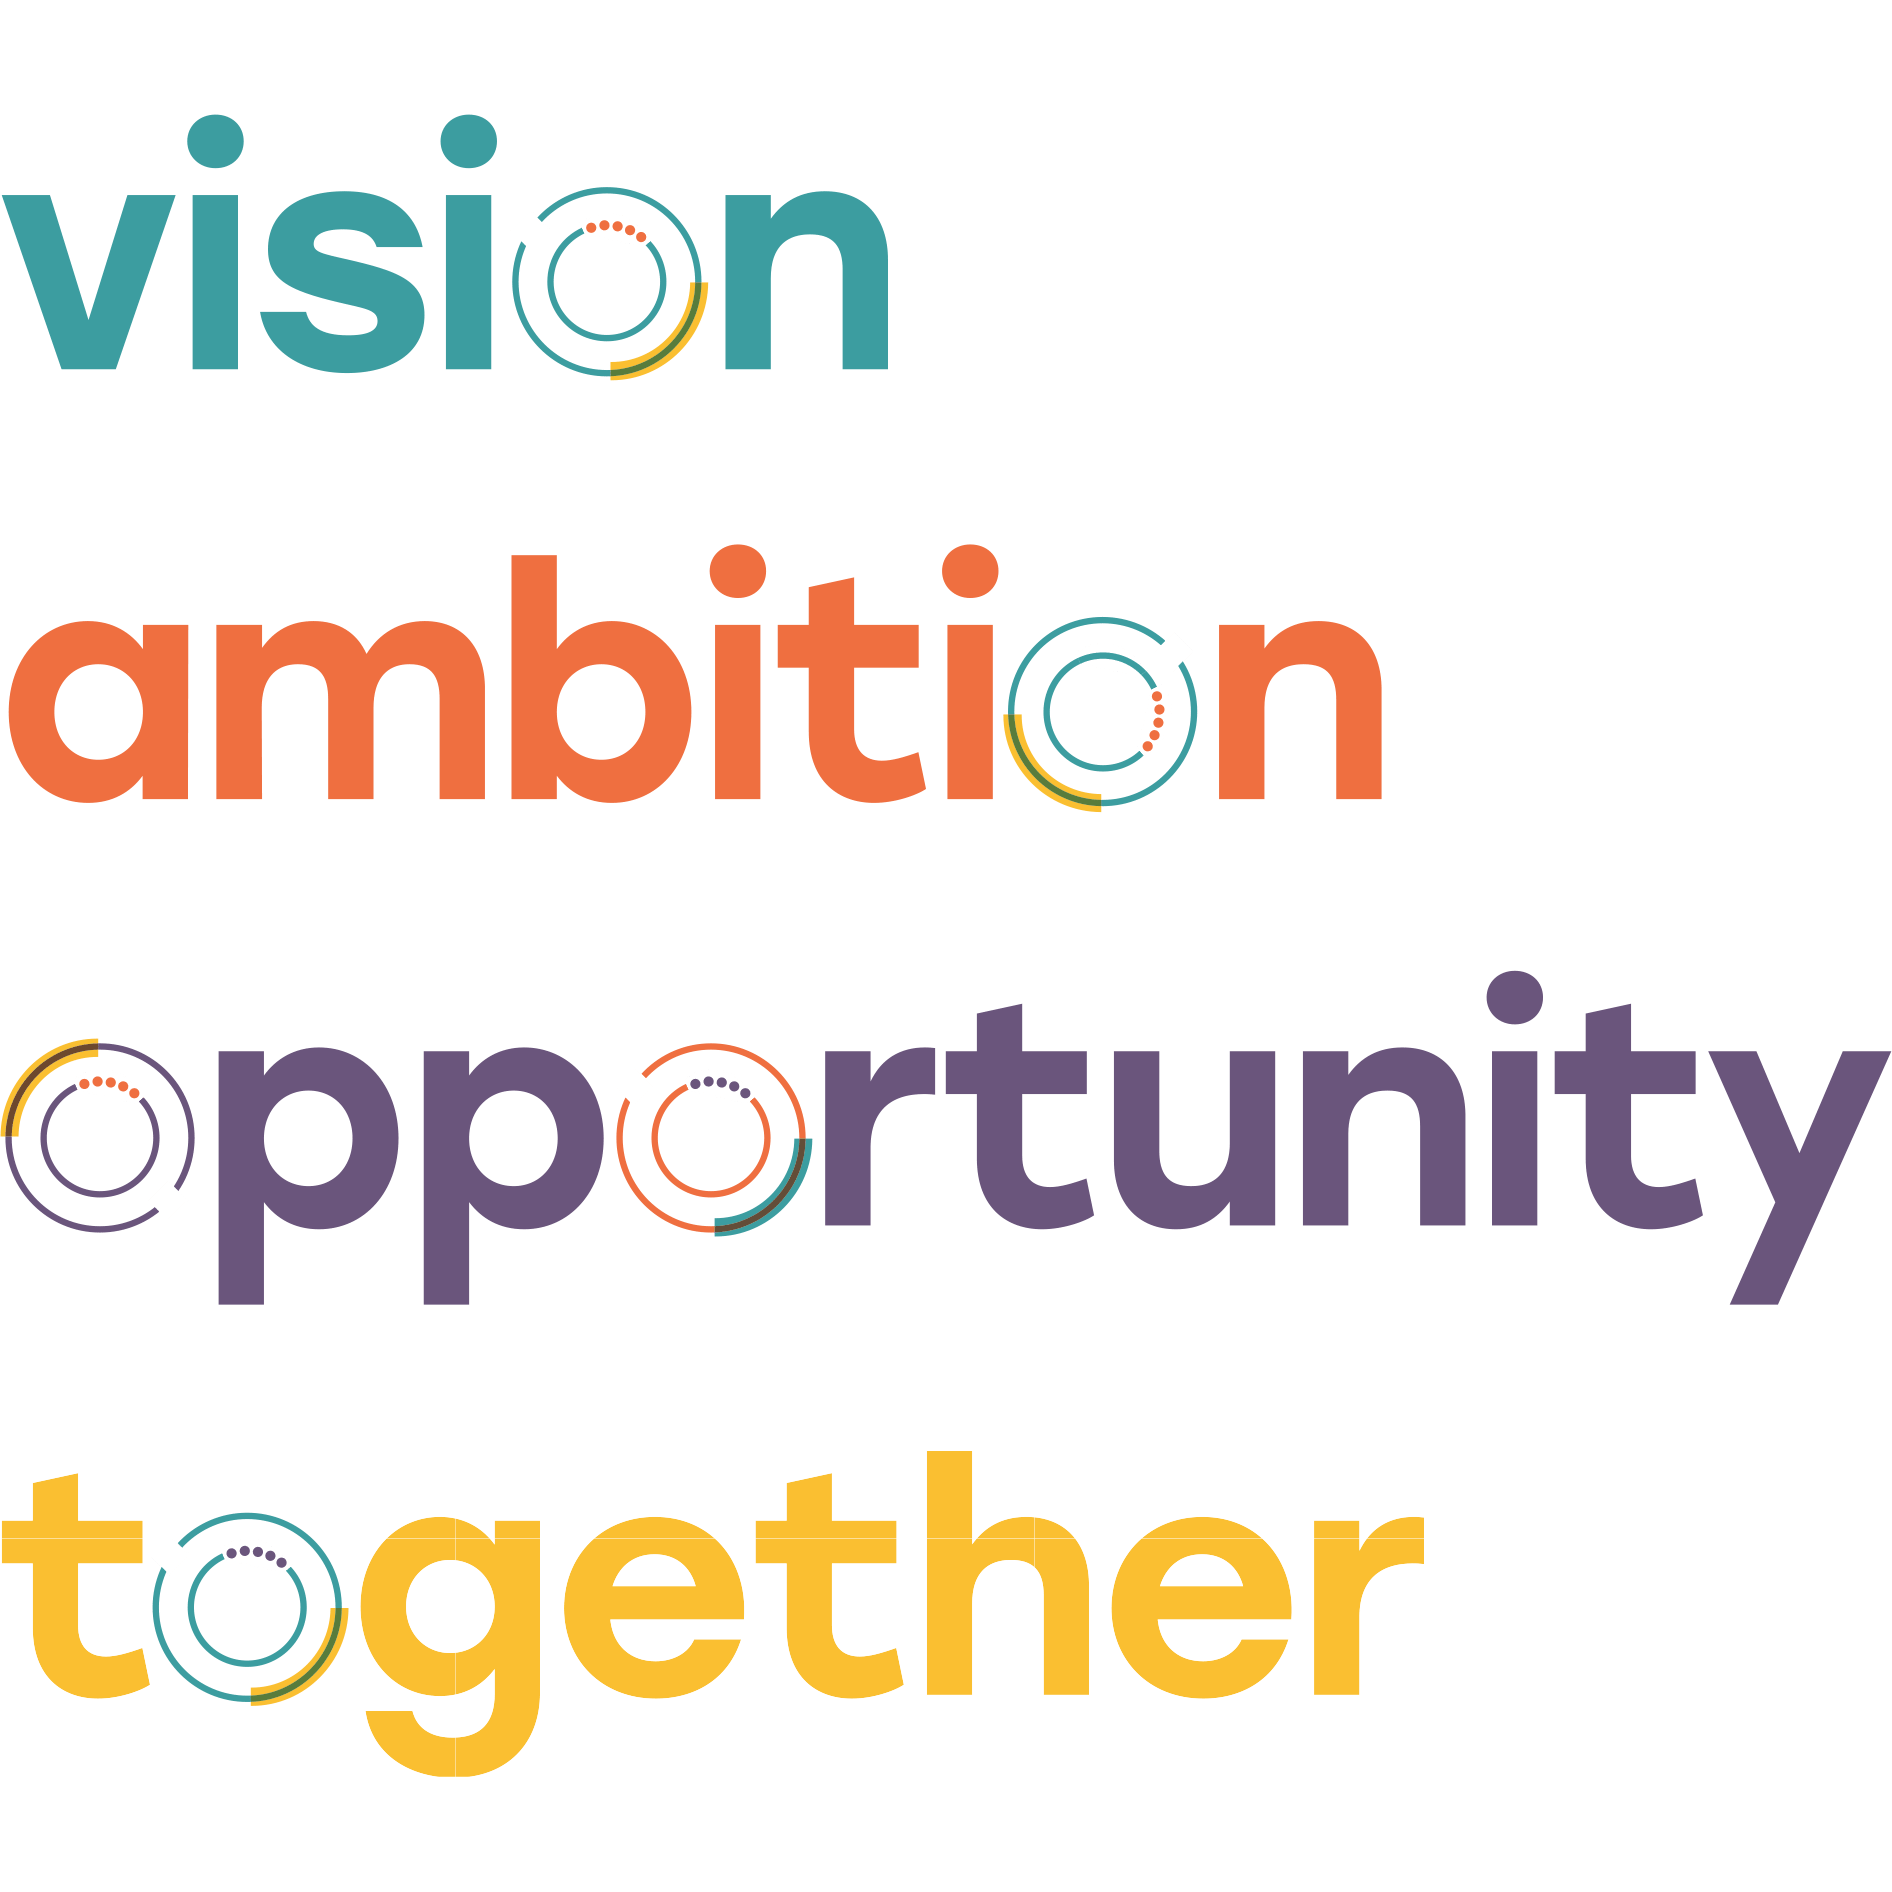 Vision, ambition, opportunity, together